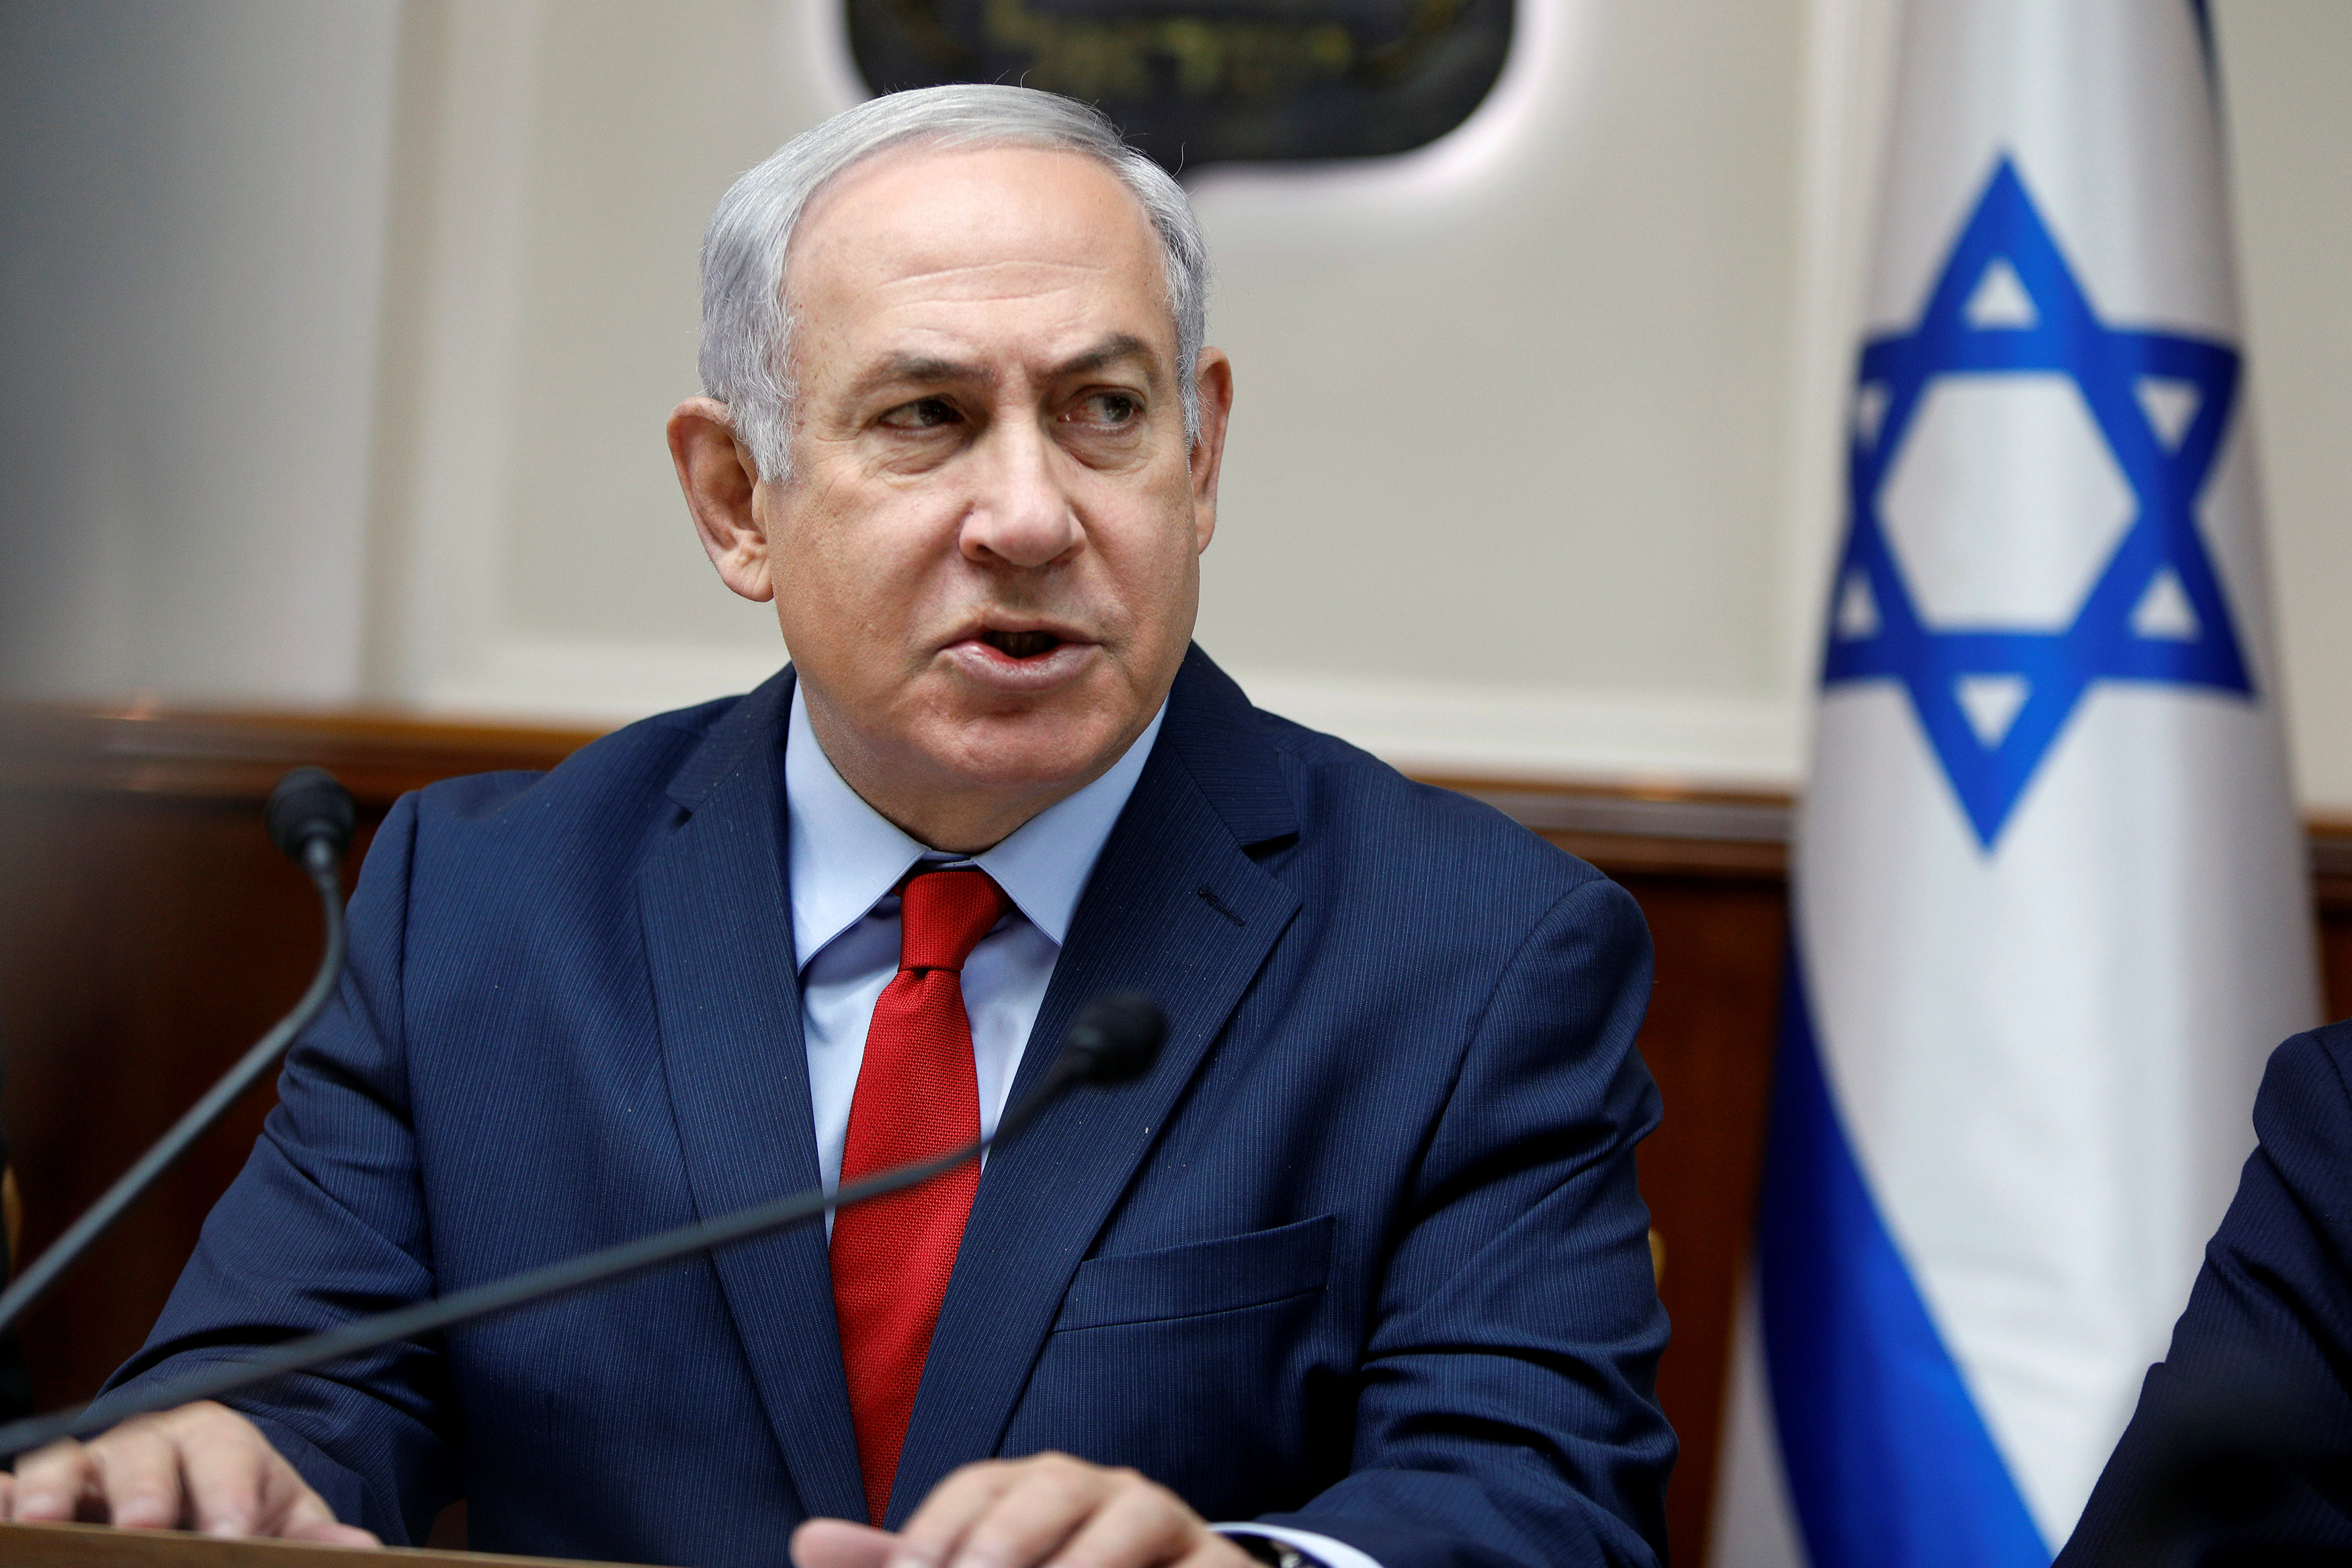 Netanyahu Makes Careful Comments on US Aid Cuts to Palestine